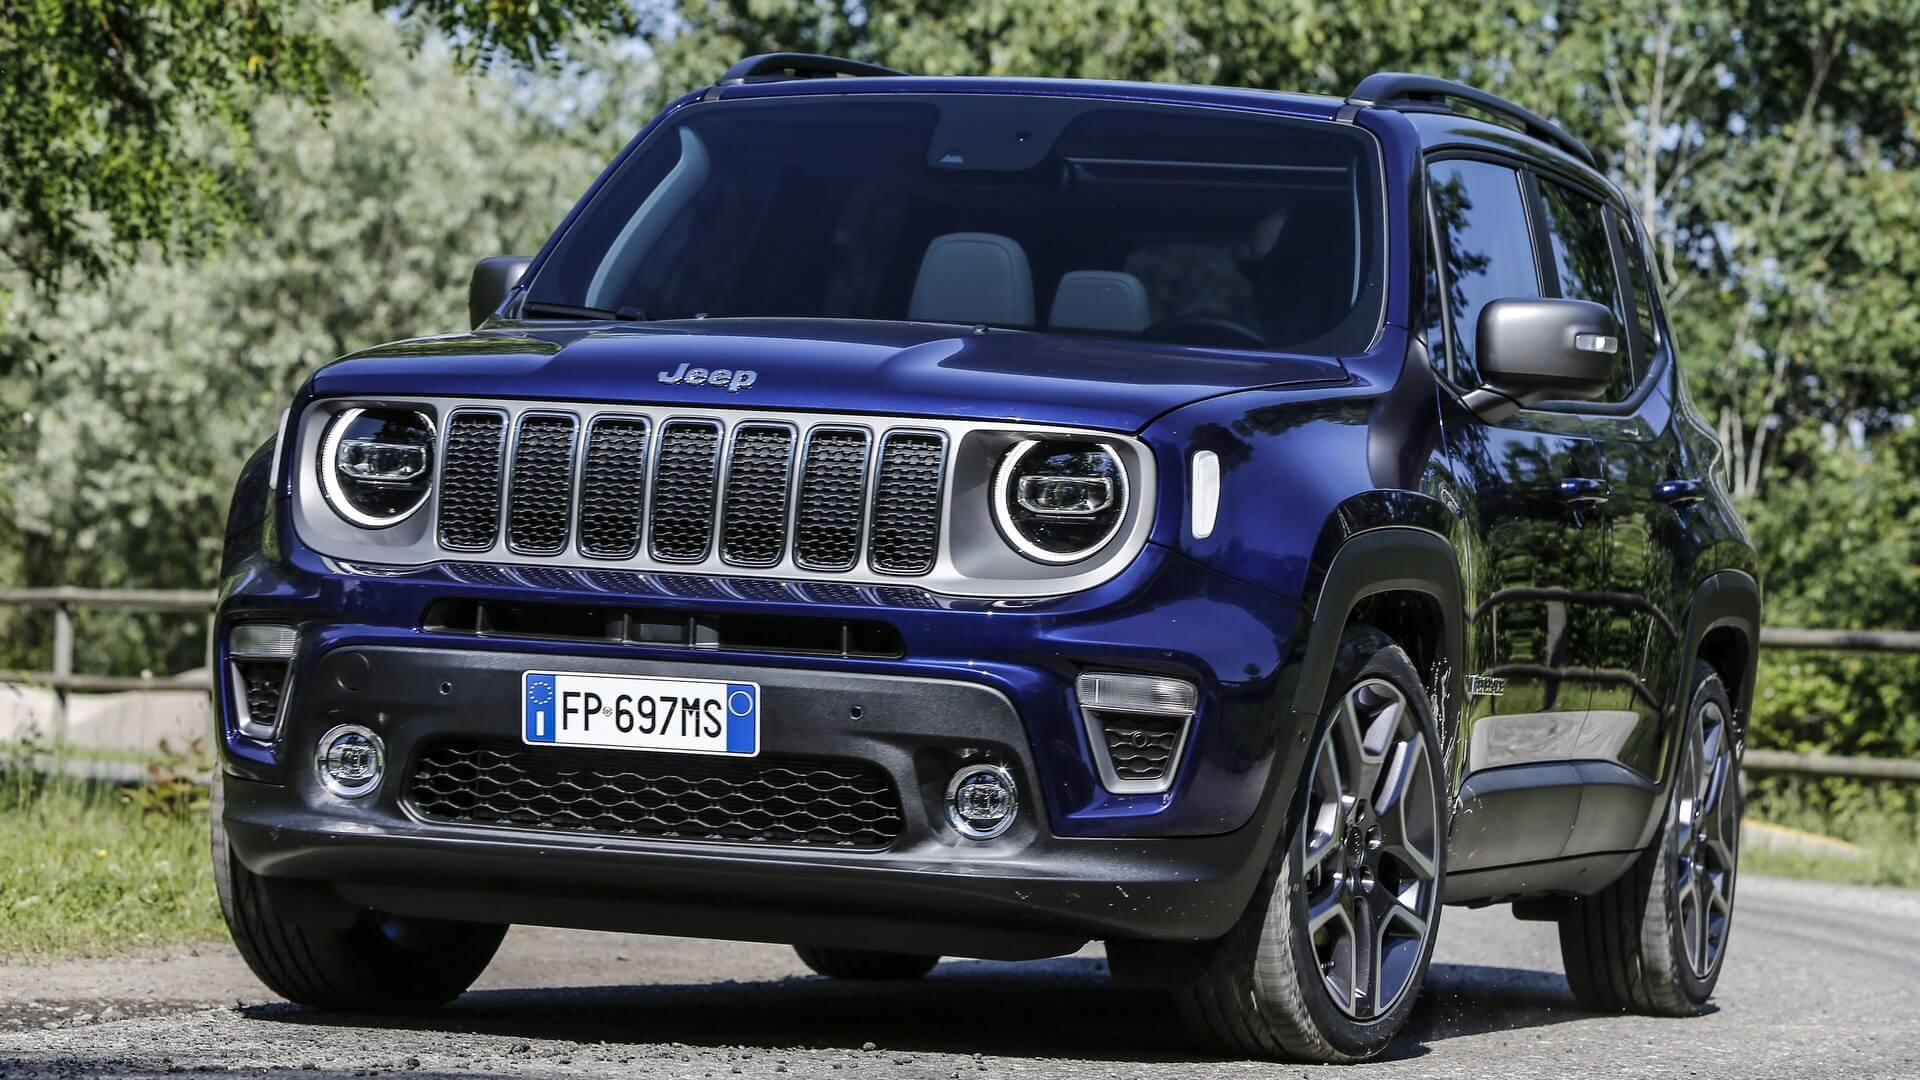 Jeep Renegade Crash Tested By The Euro Ncap Awarded The